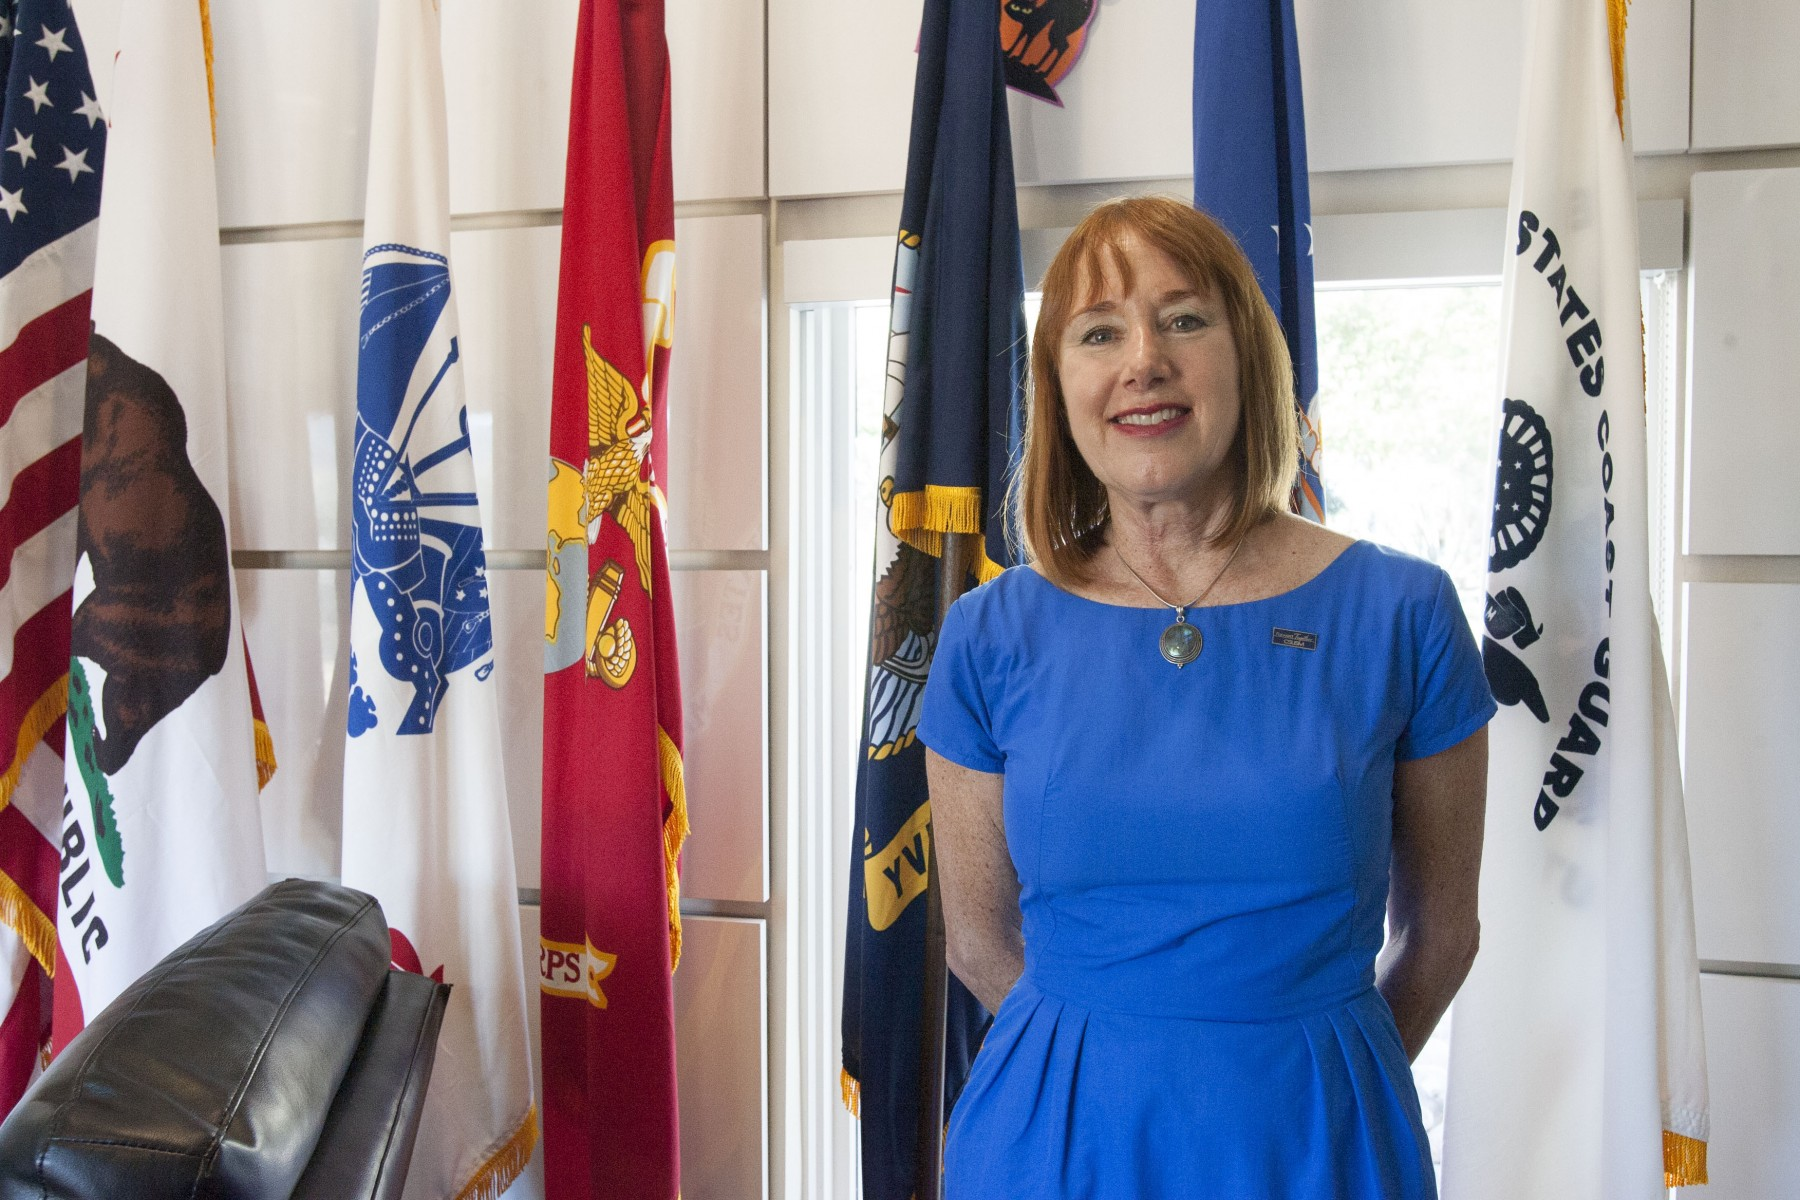 Patricia Reily, Director of CSUSM's Veterans Center